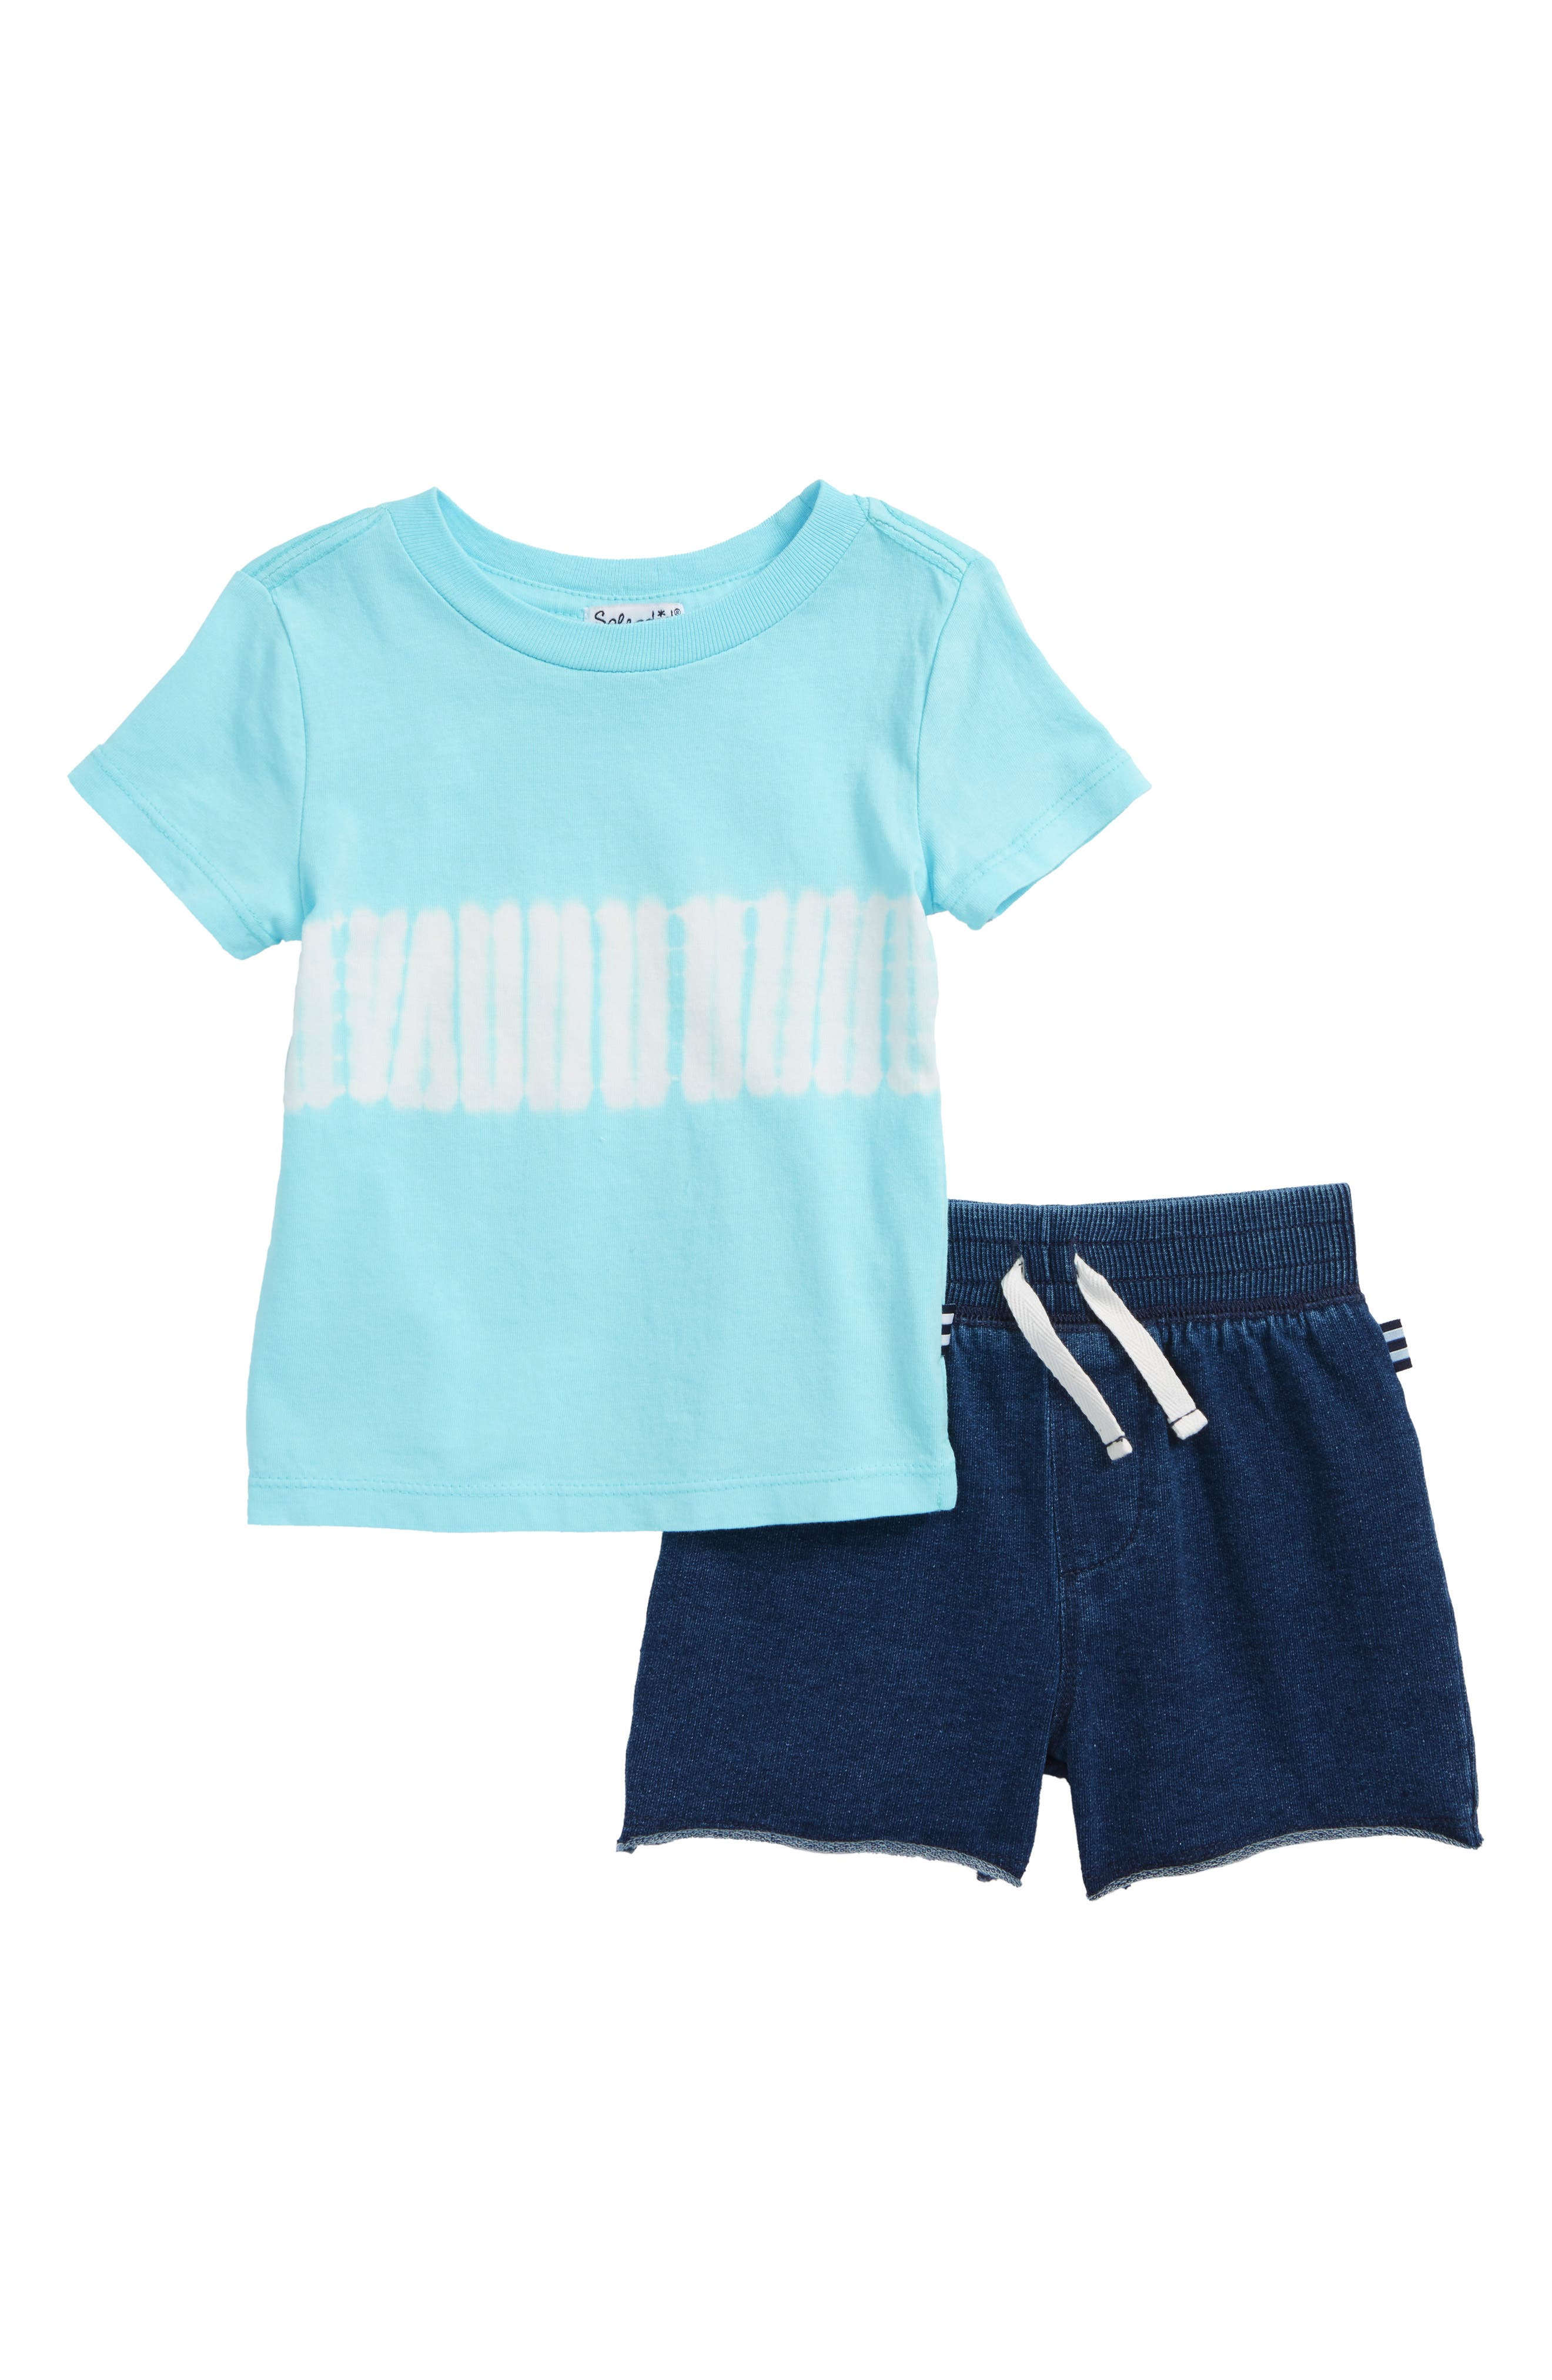 Tie Dye T-Shirt & Shorts Set,                         Main,                         color, 401